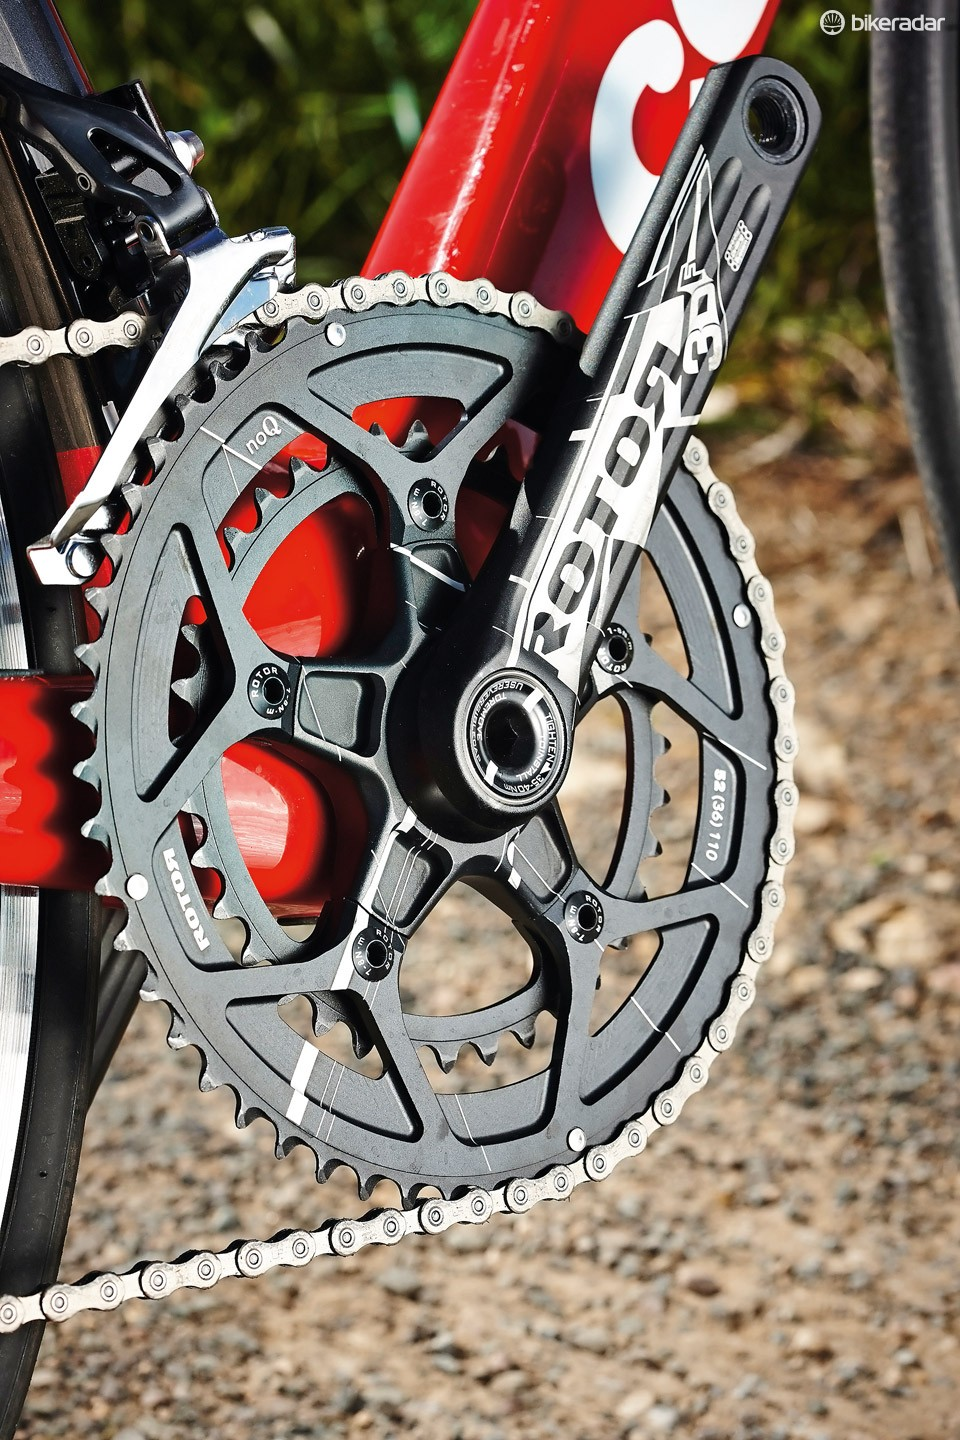 The 52/36 and 11-25 combo provides a versatile gearing range